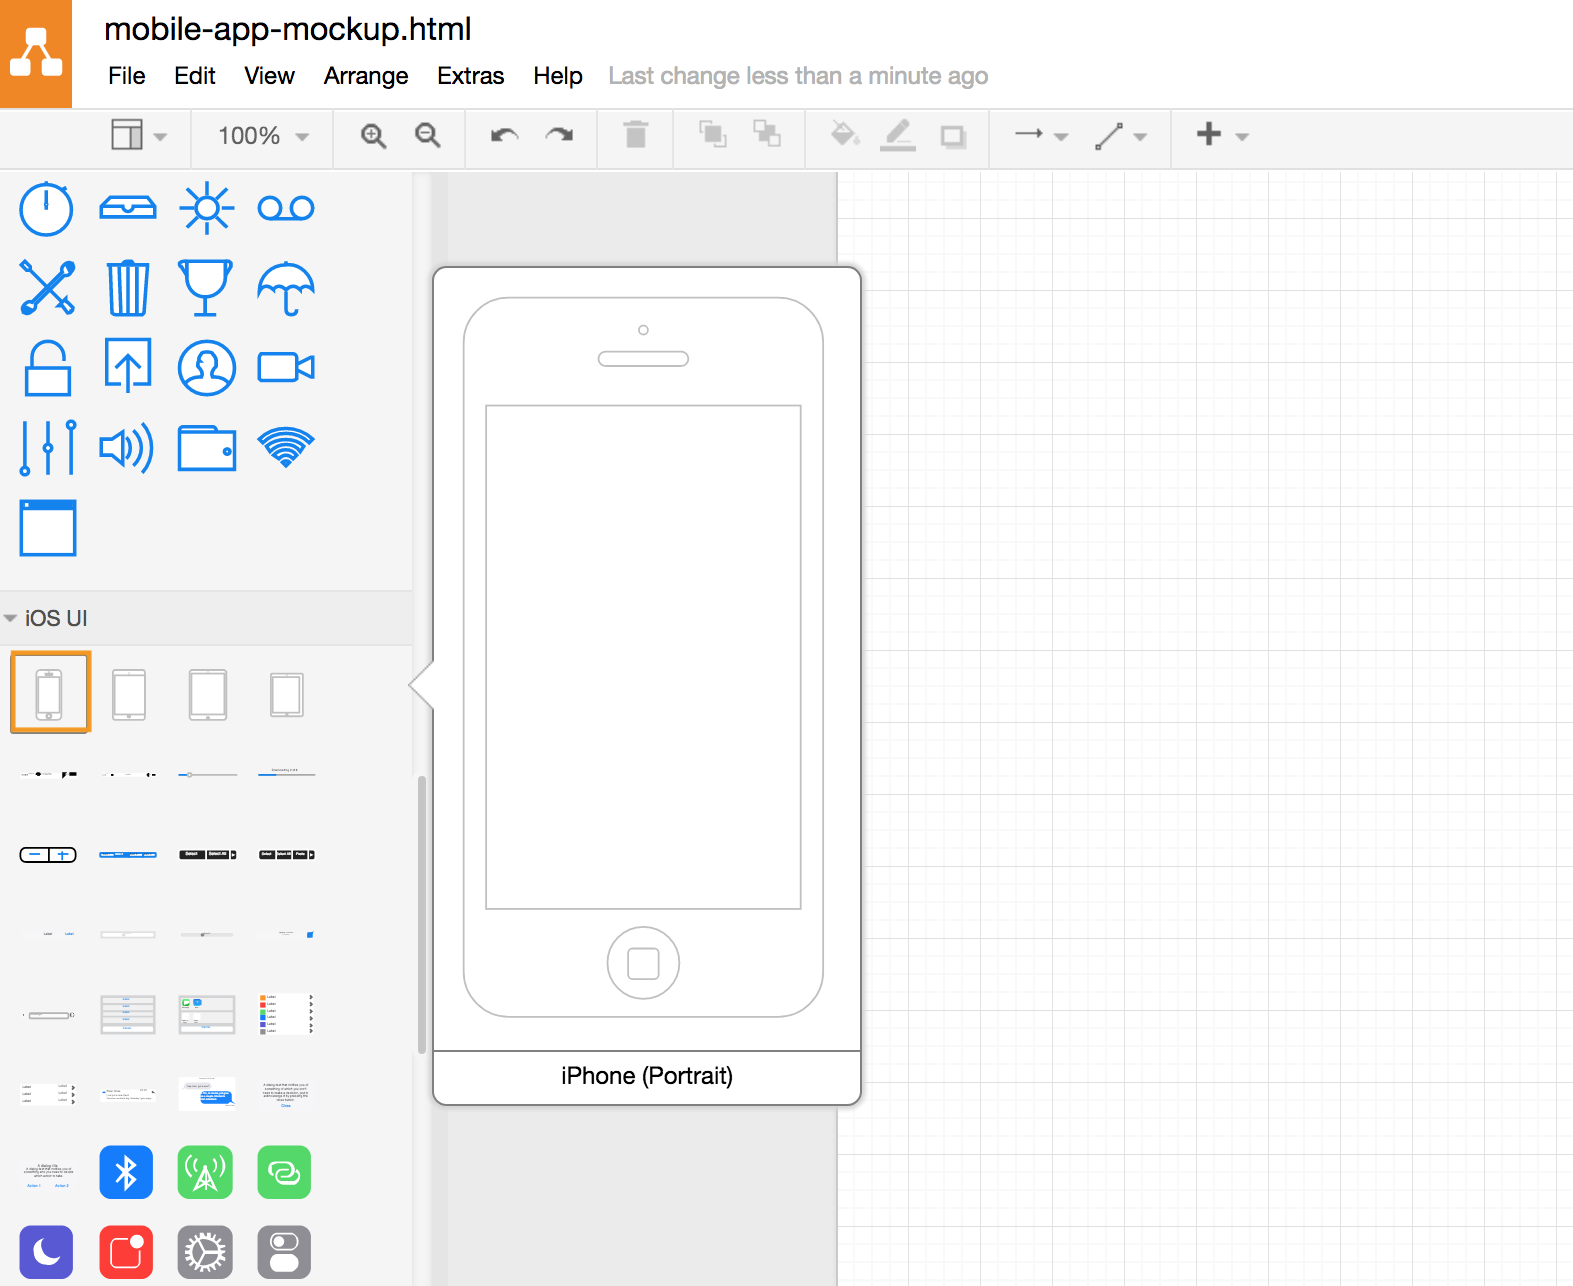 draw.io - insert an iPhone outline